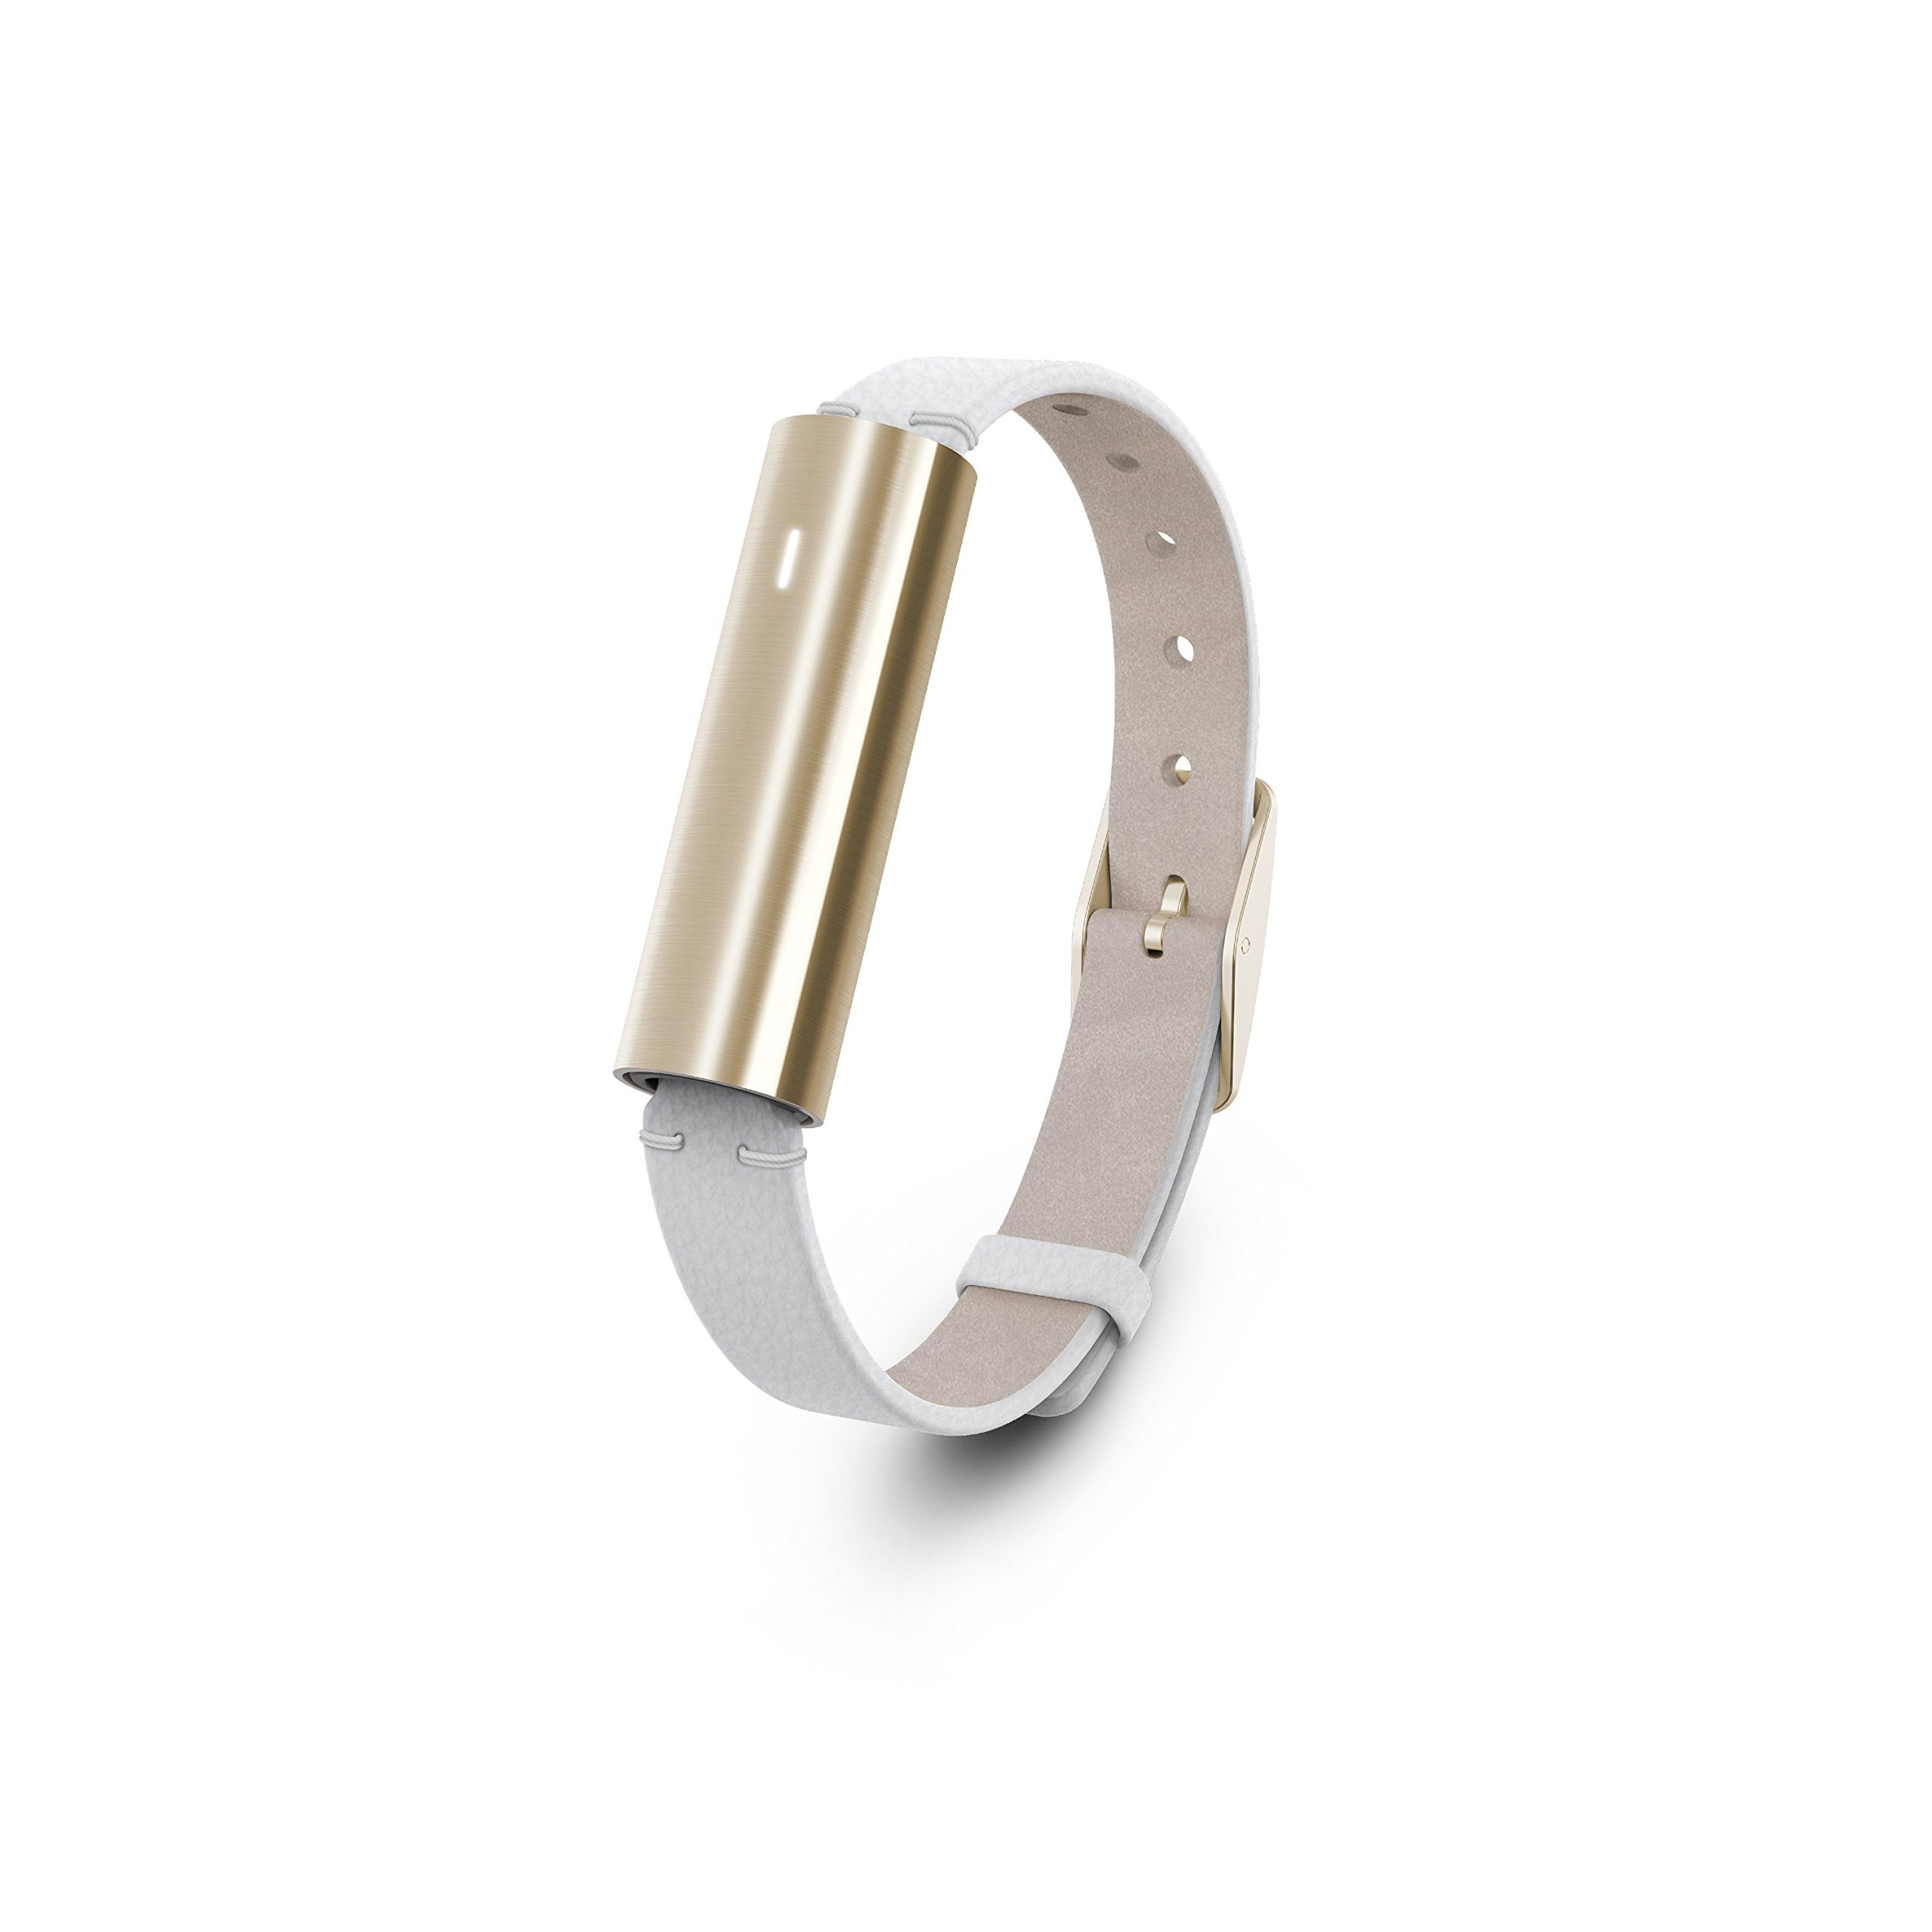 Misfit Ray - Fitness + Sleep Tracker with White Leather Band (Stainless Steel Gold)